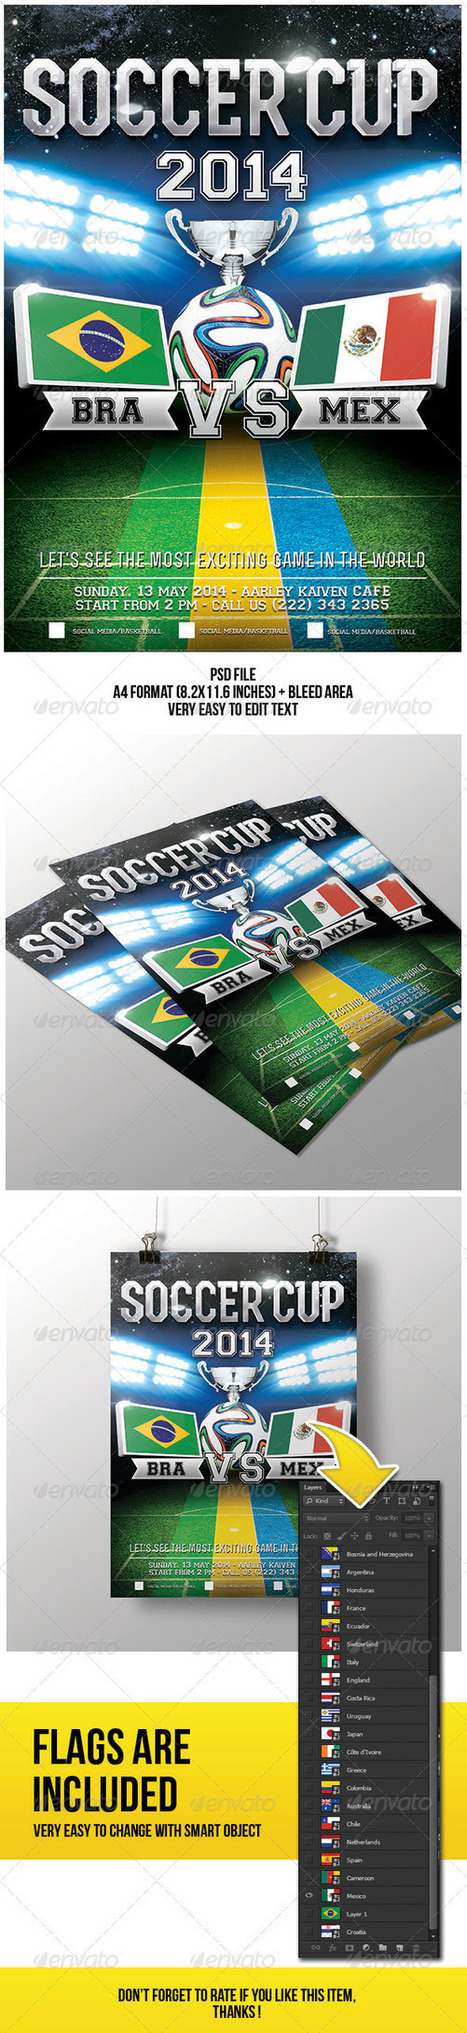 Soccer Cup Flyer (Sports)   Sport at a glance   Scoop.it